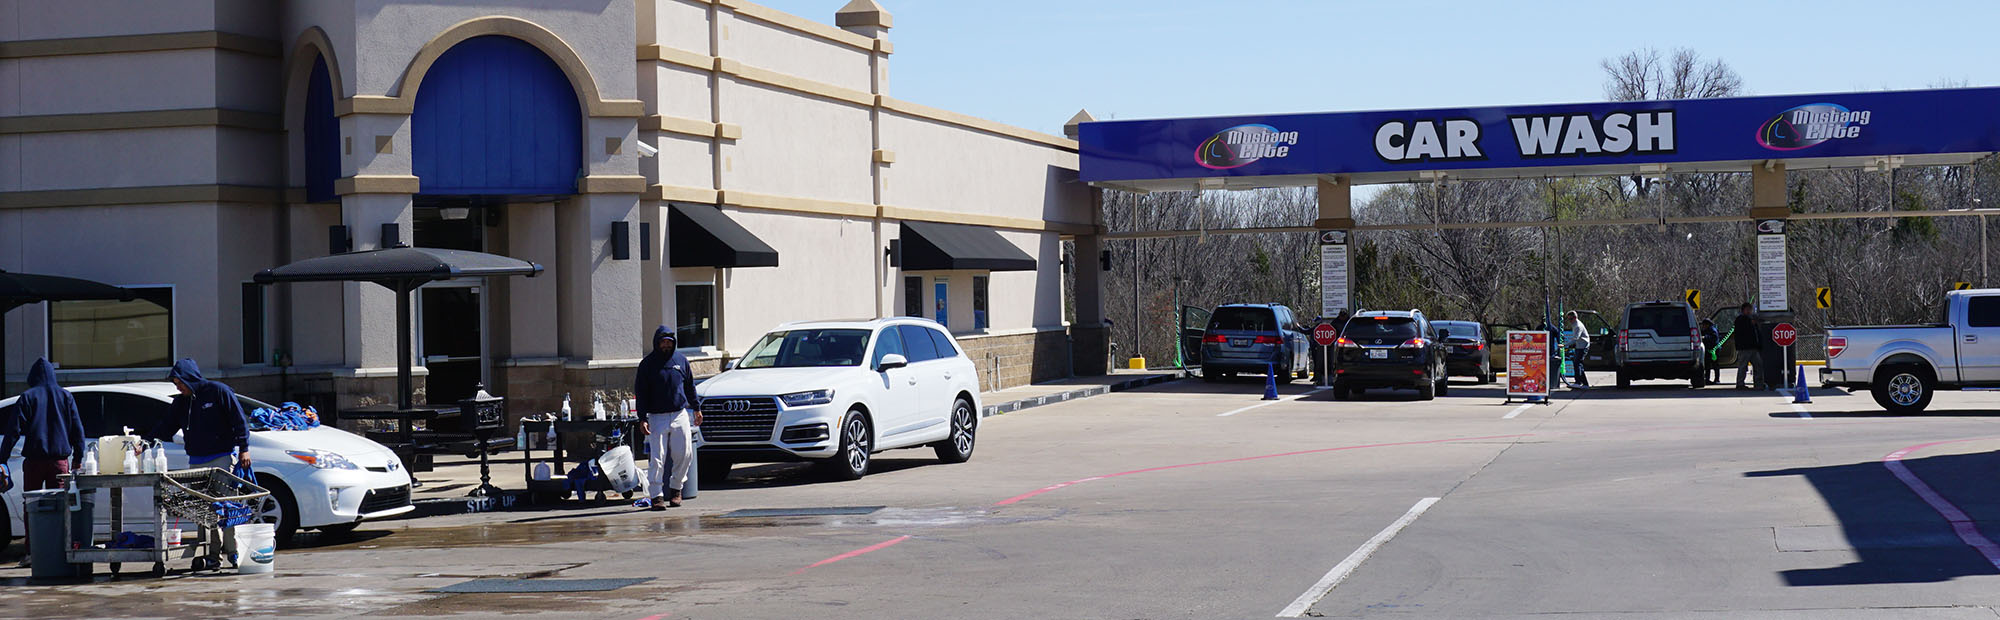 Grapevine Carwash Car Wash Southlake Car Detailing Lube - Show me the closest car wash